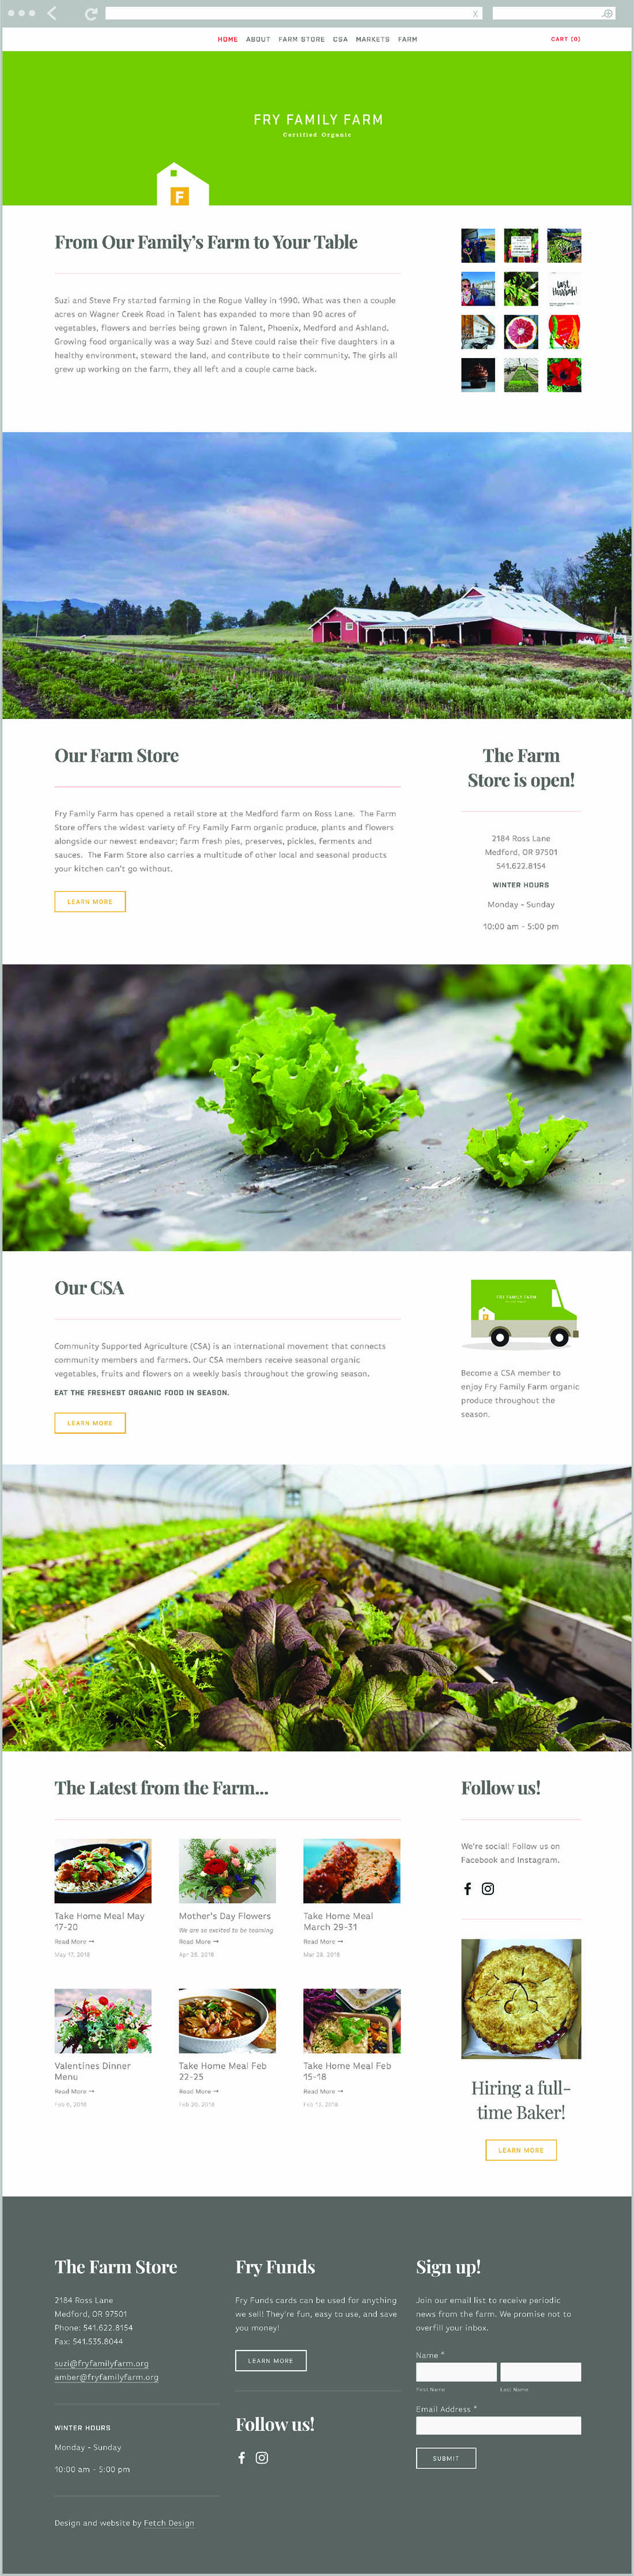 Fry Family Farm website by Fetch Design. The farm is located in Jacksonville, Oregon.